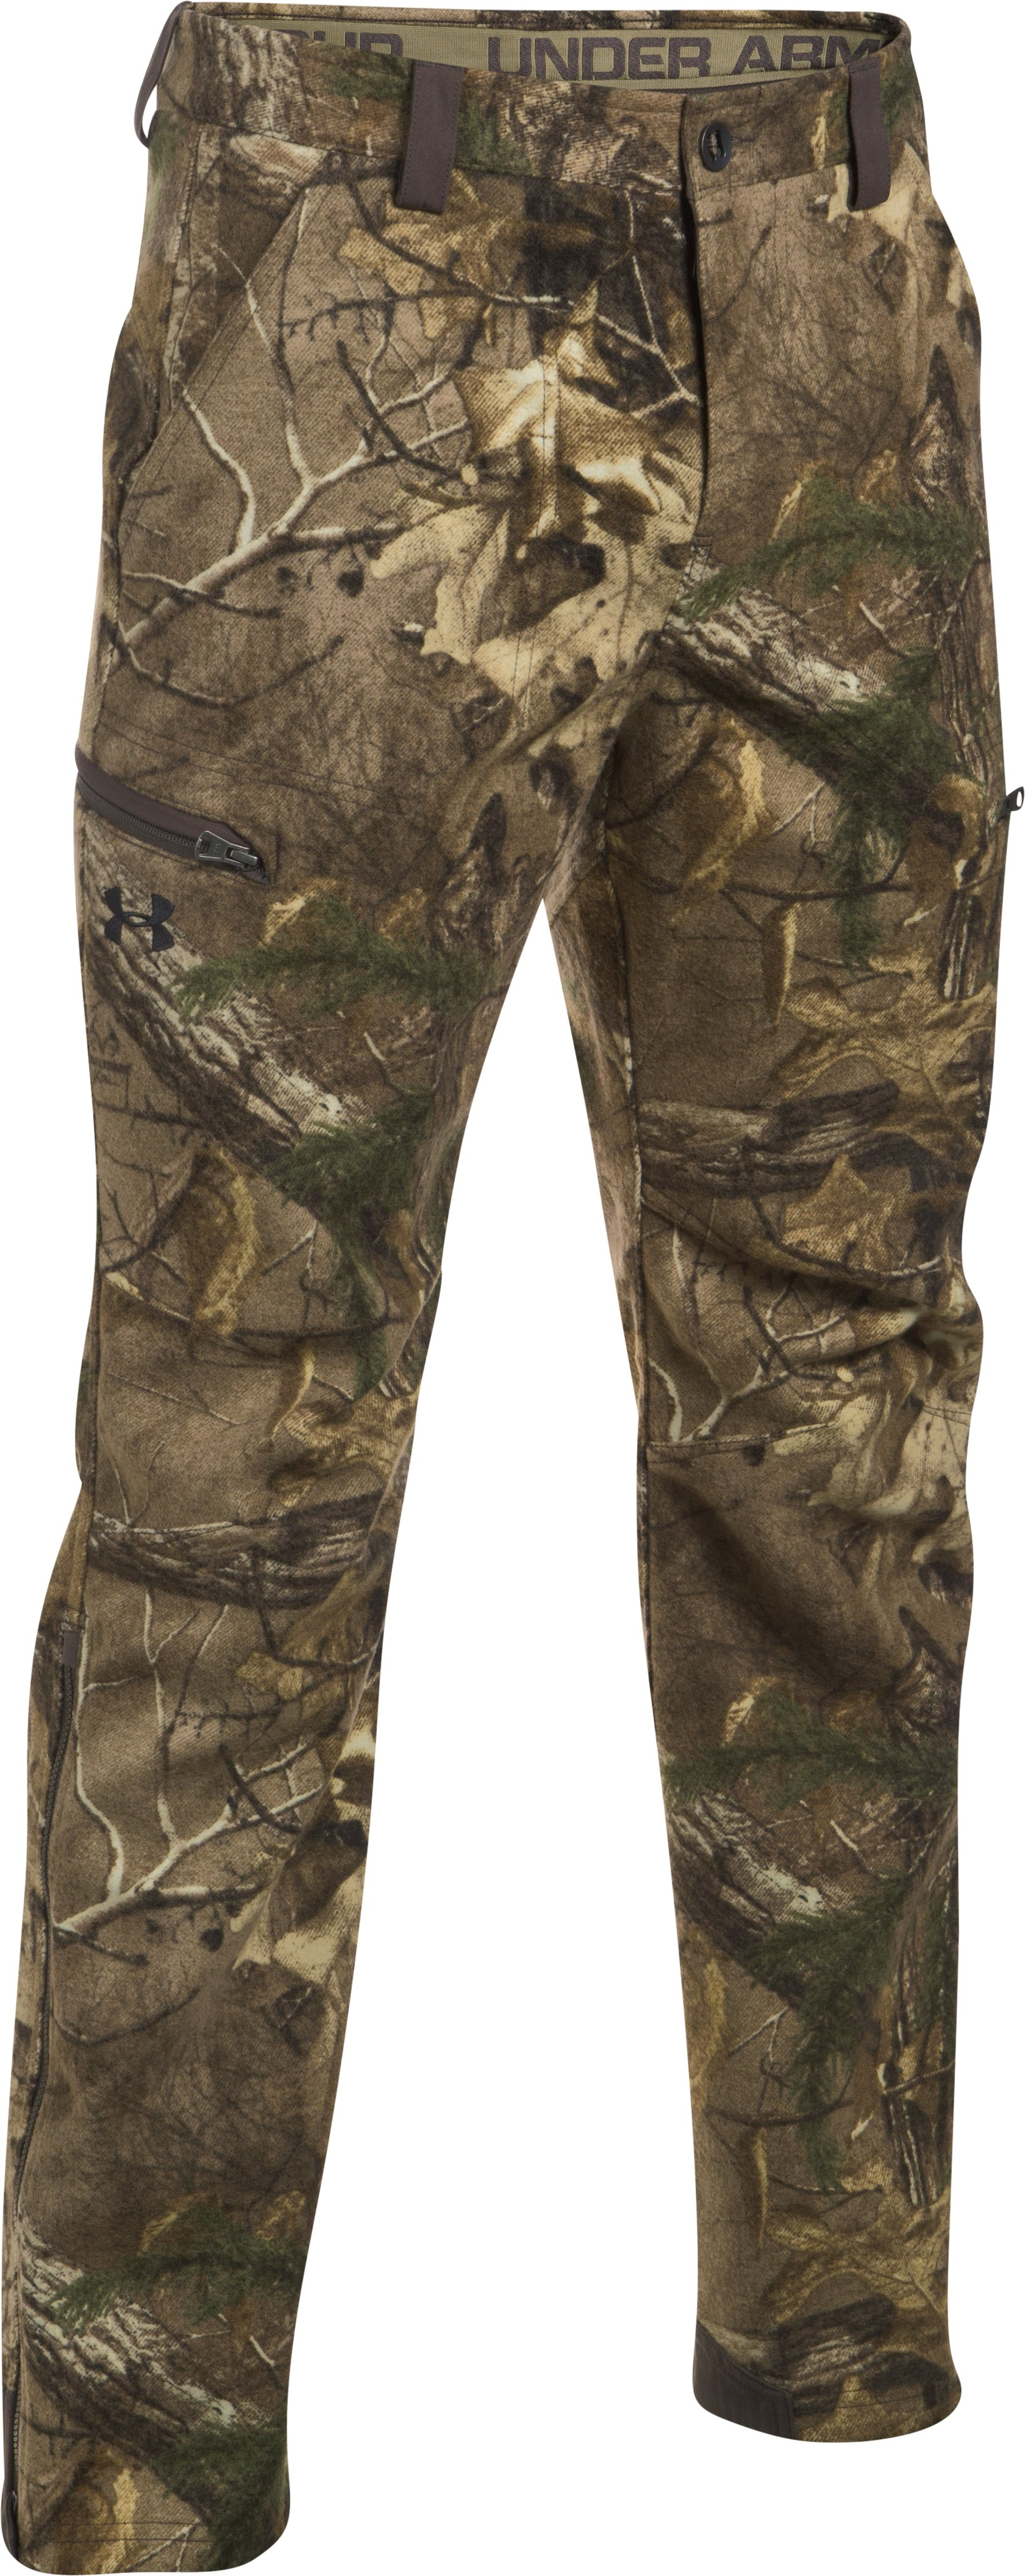 Men's UA Stealth Reaper Mid Season Wool Pants, REALTREE AP-XTRA